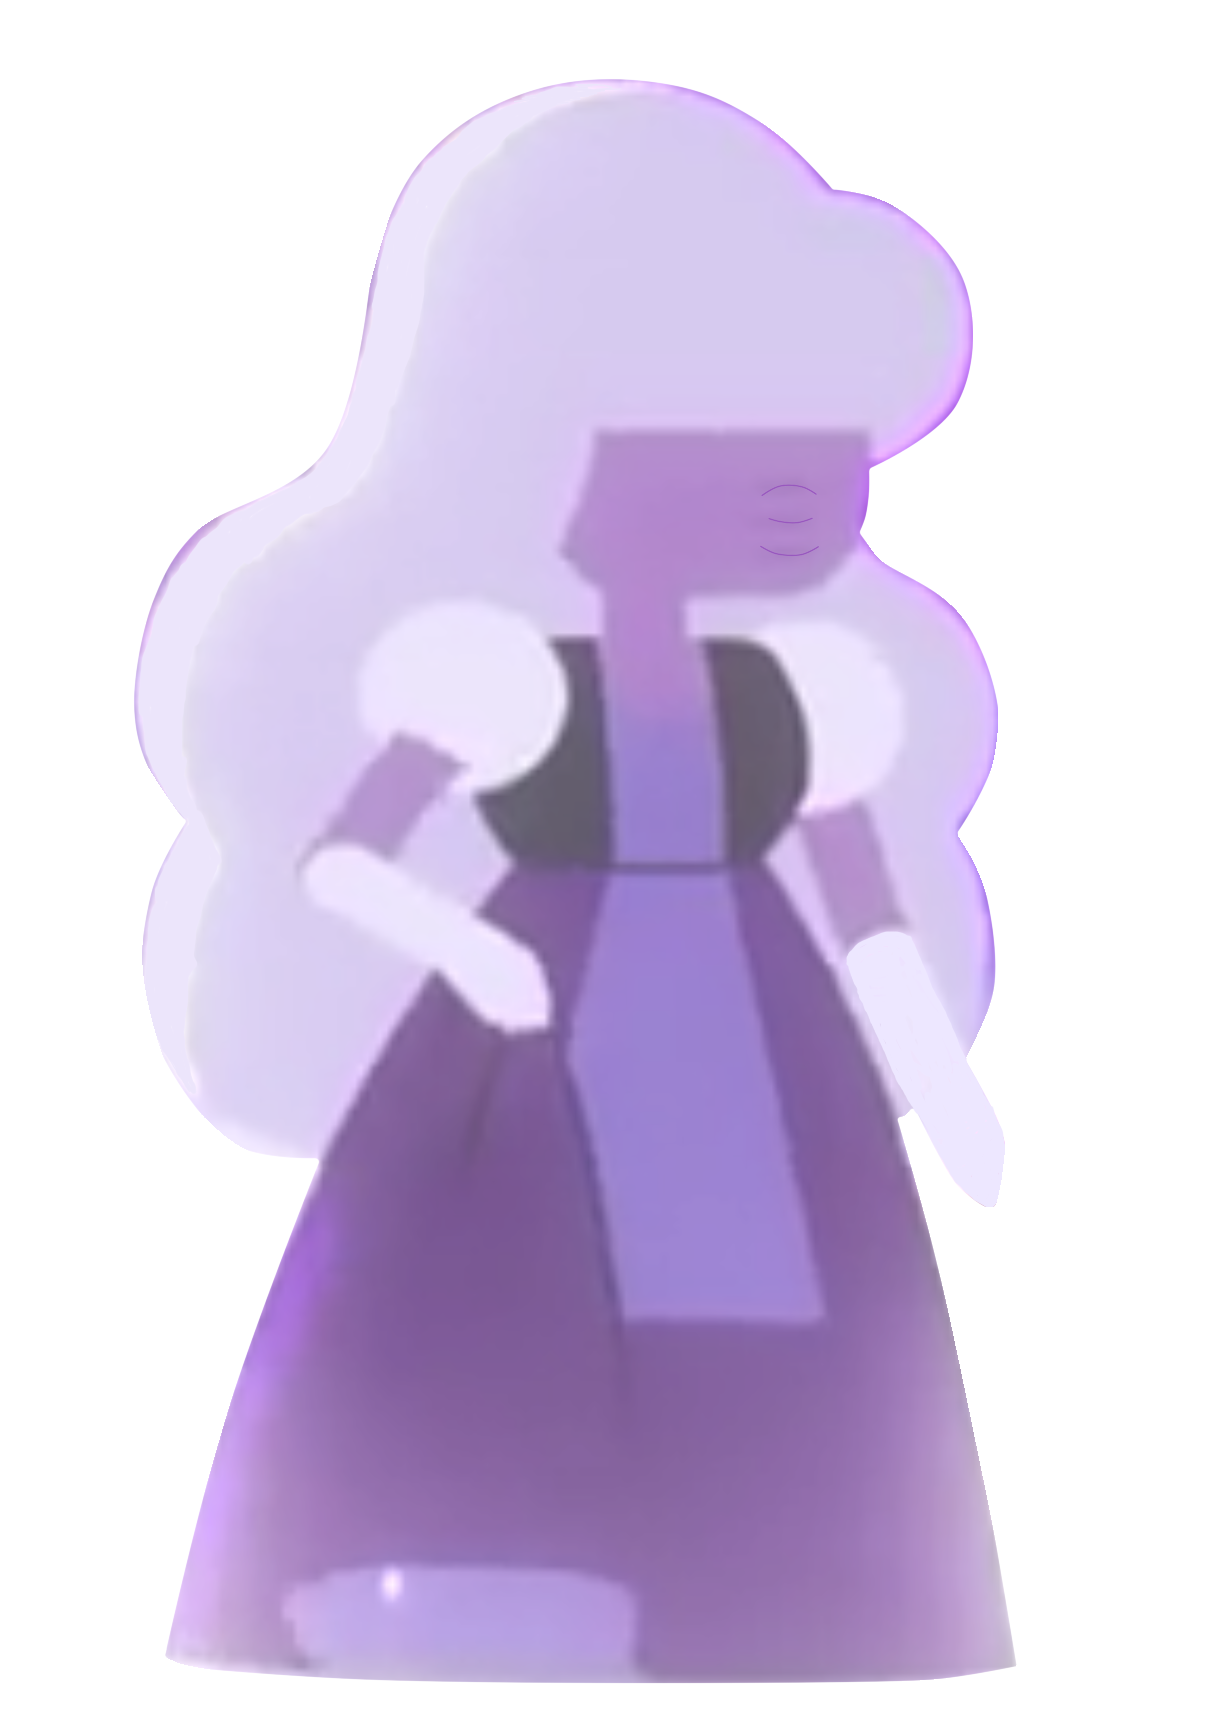 Sapphire in Dove Self-Esteem Project x Steven Universe